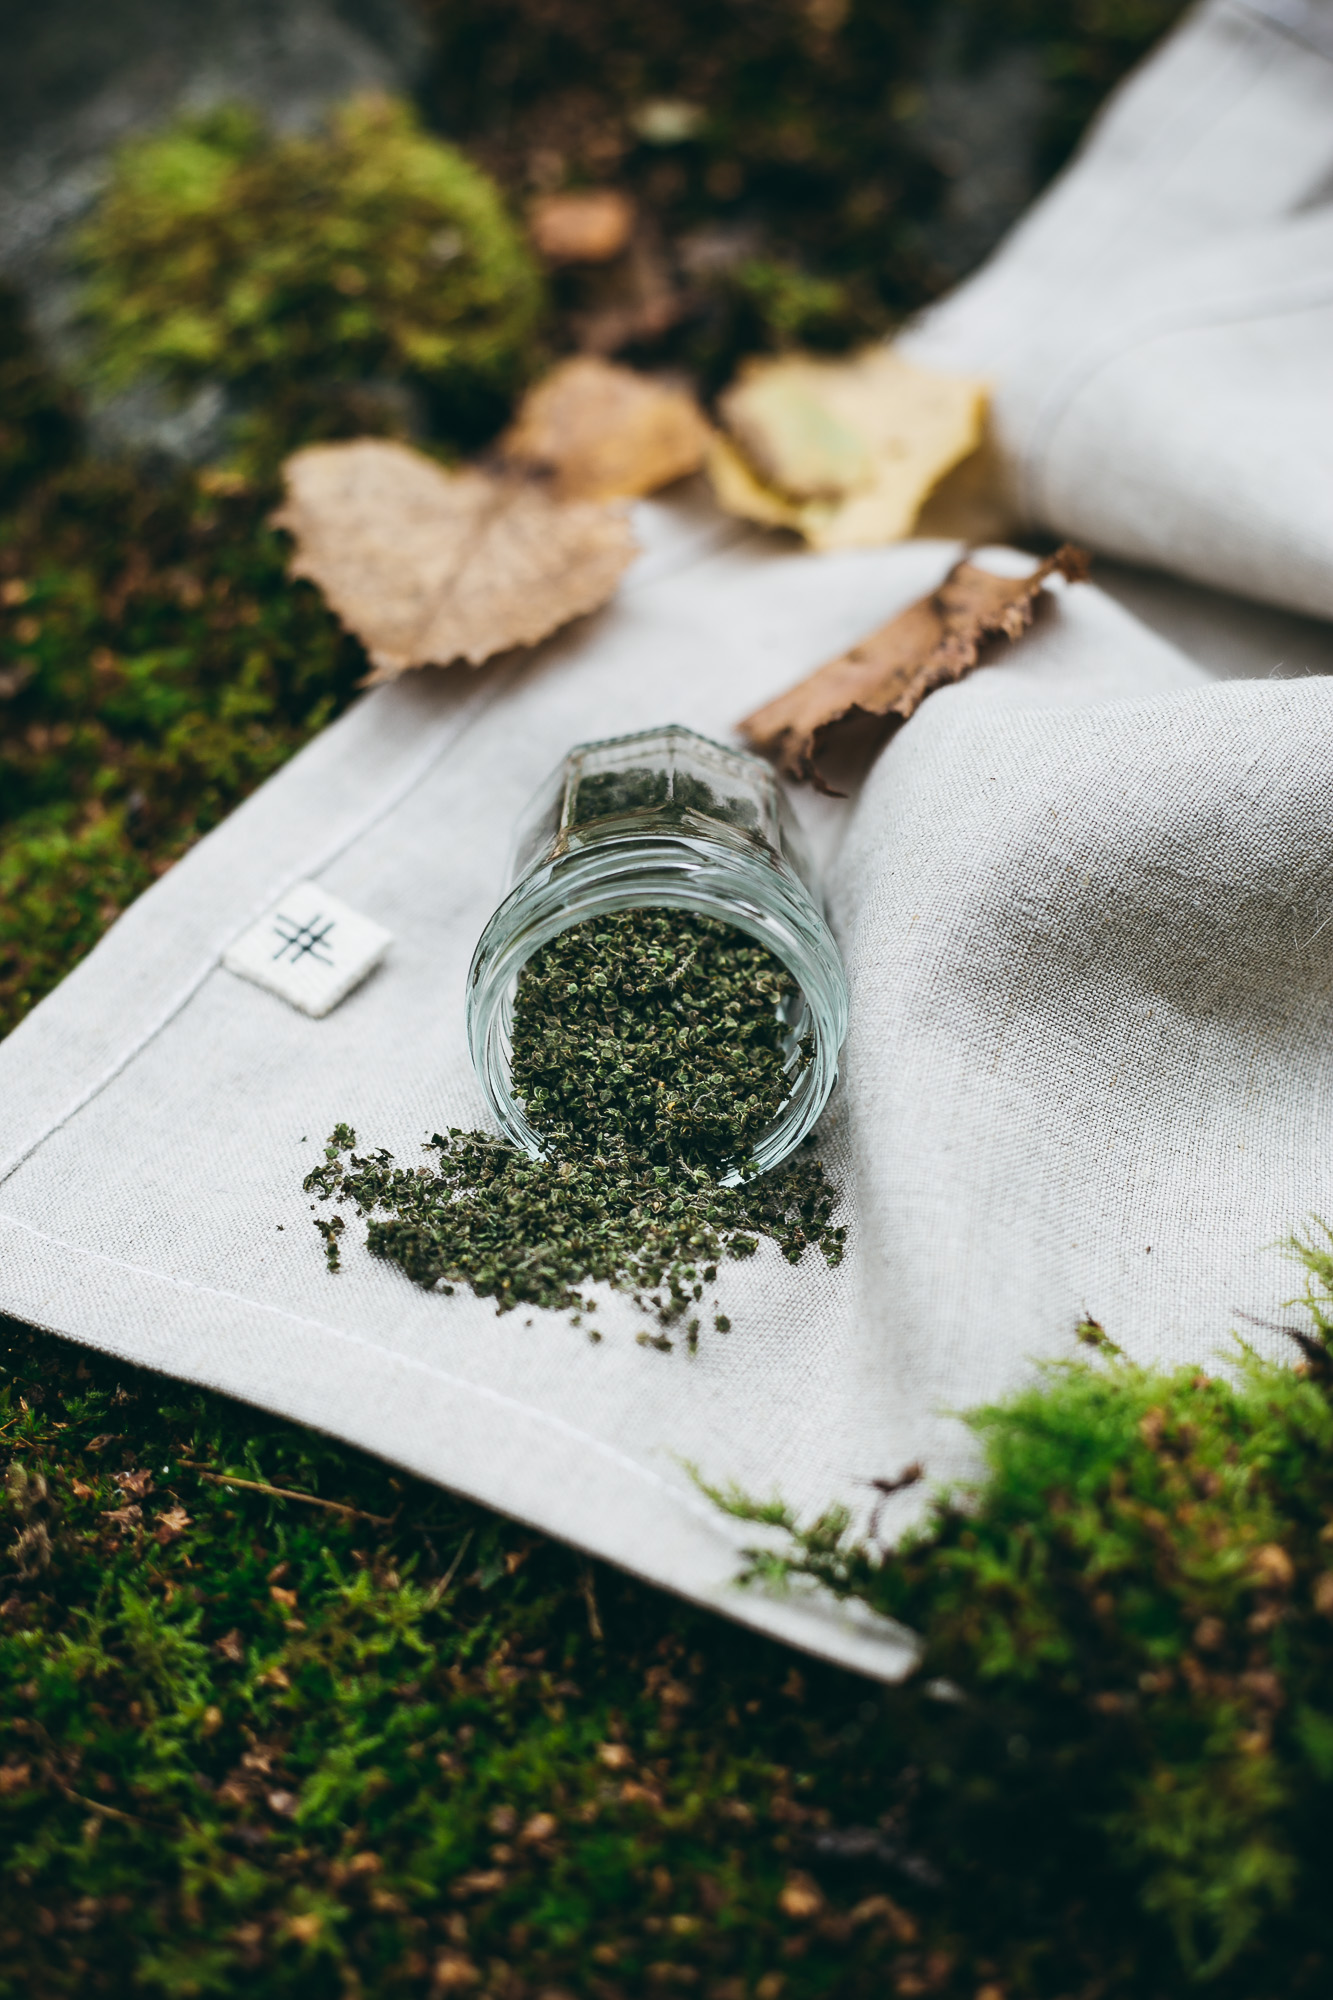 The Nordic Superfood: Stinging Nettle Seeds - Nordic Foraging by The Adagio Blog